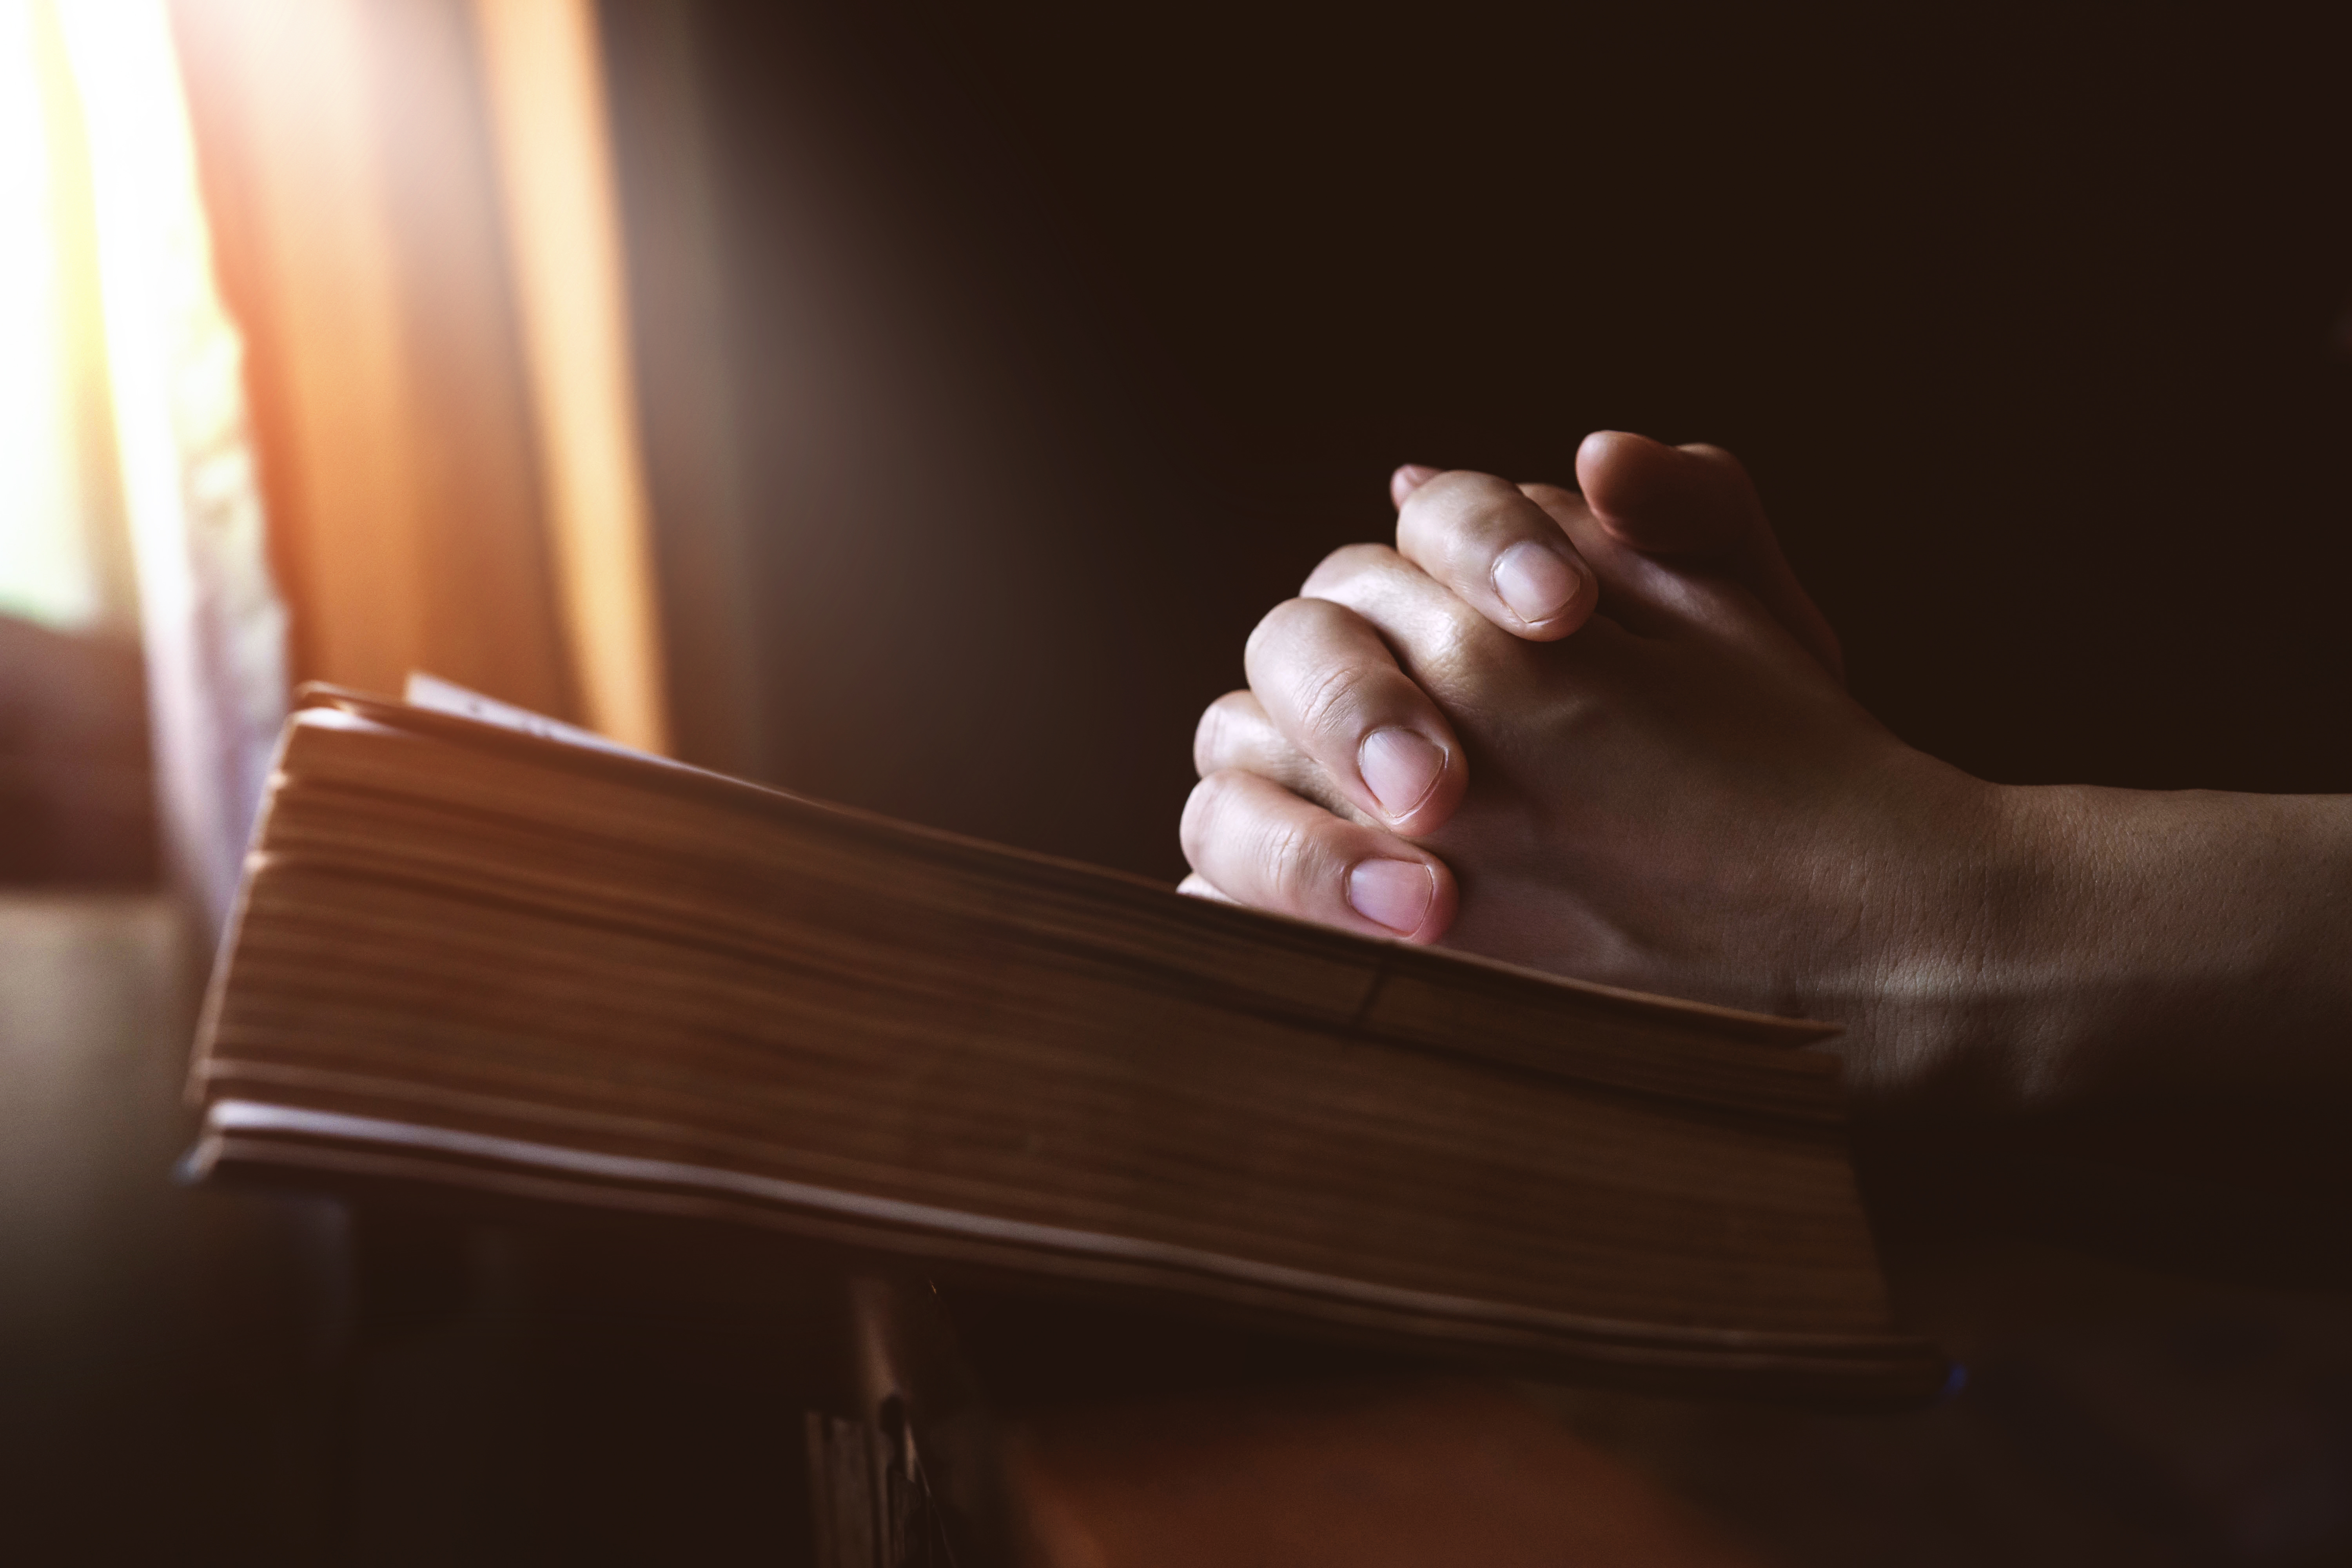 hands-praying-on-holy-bible-beside-694585924